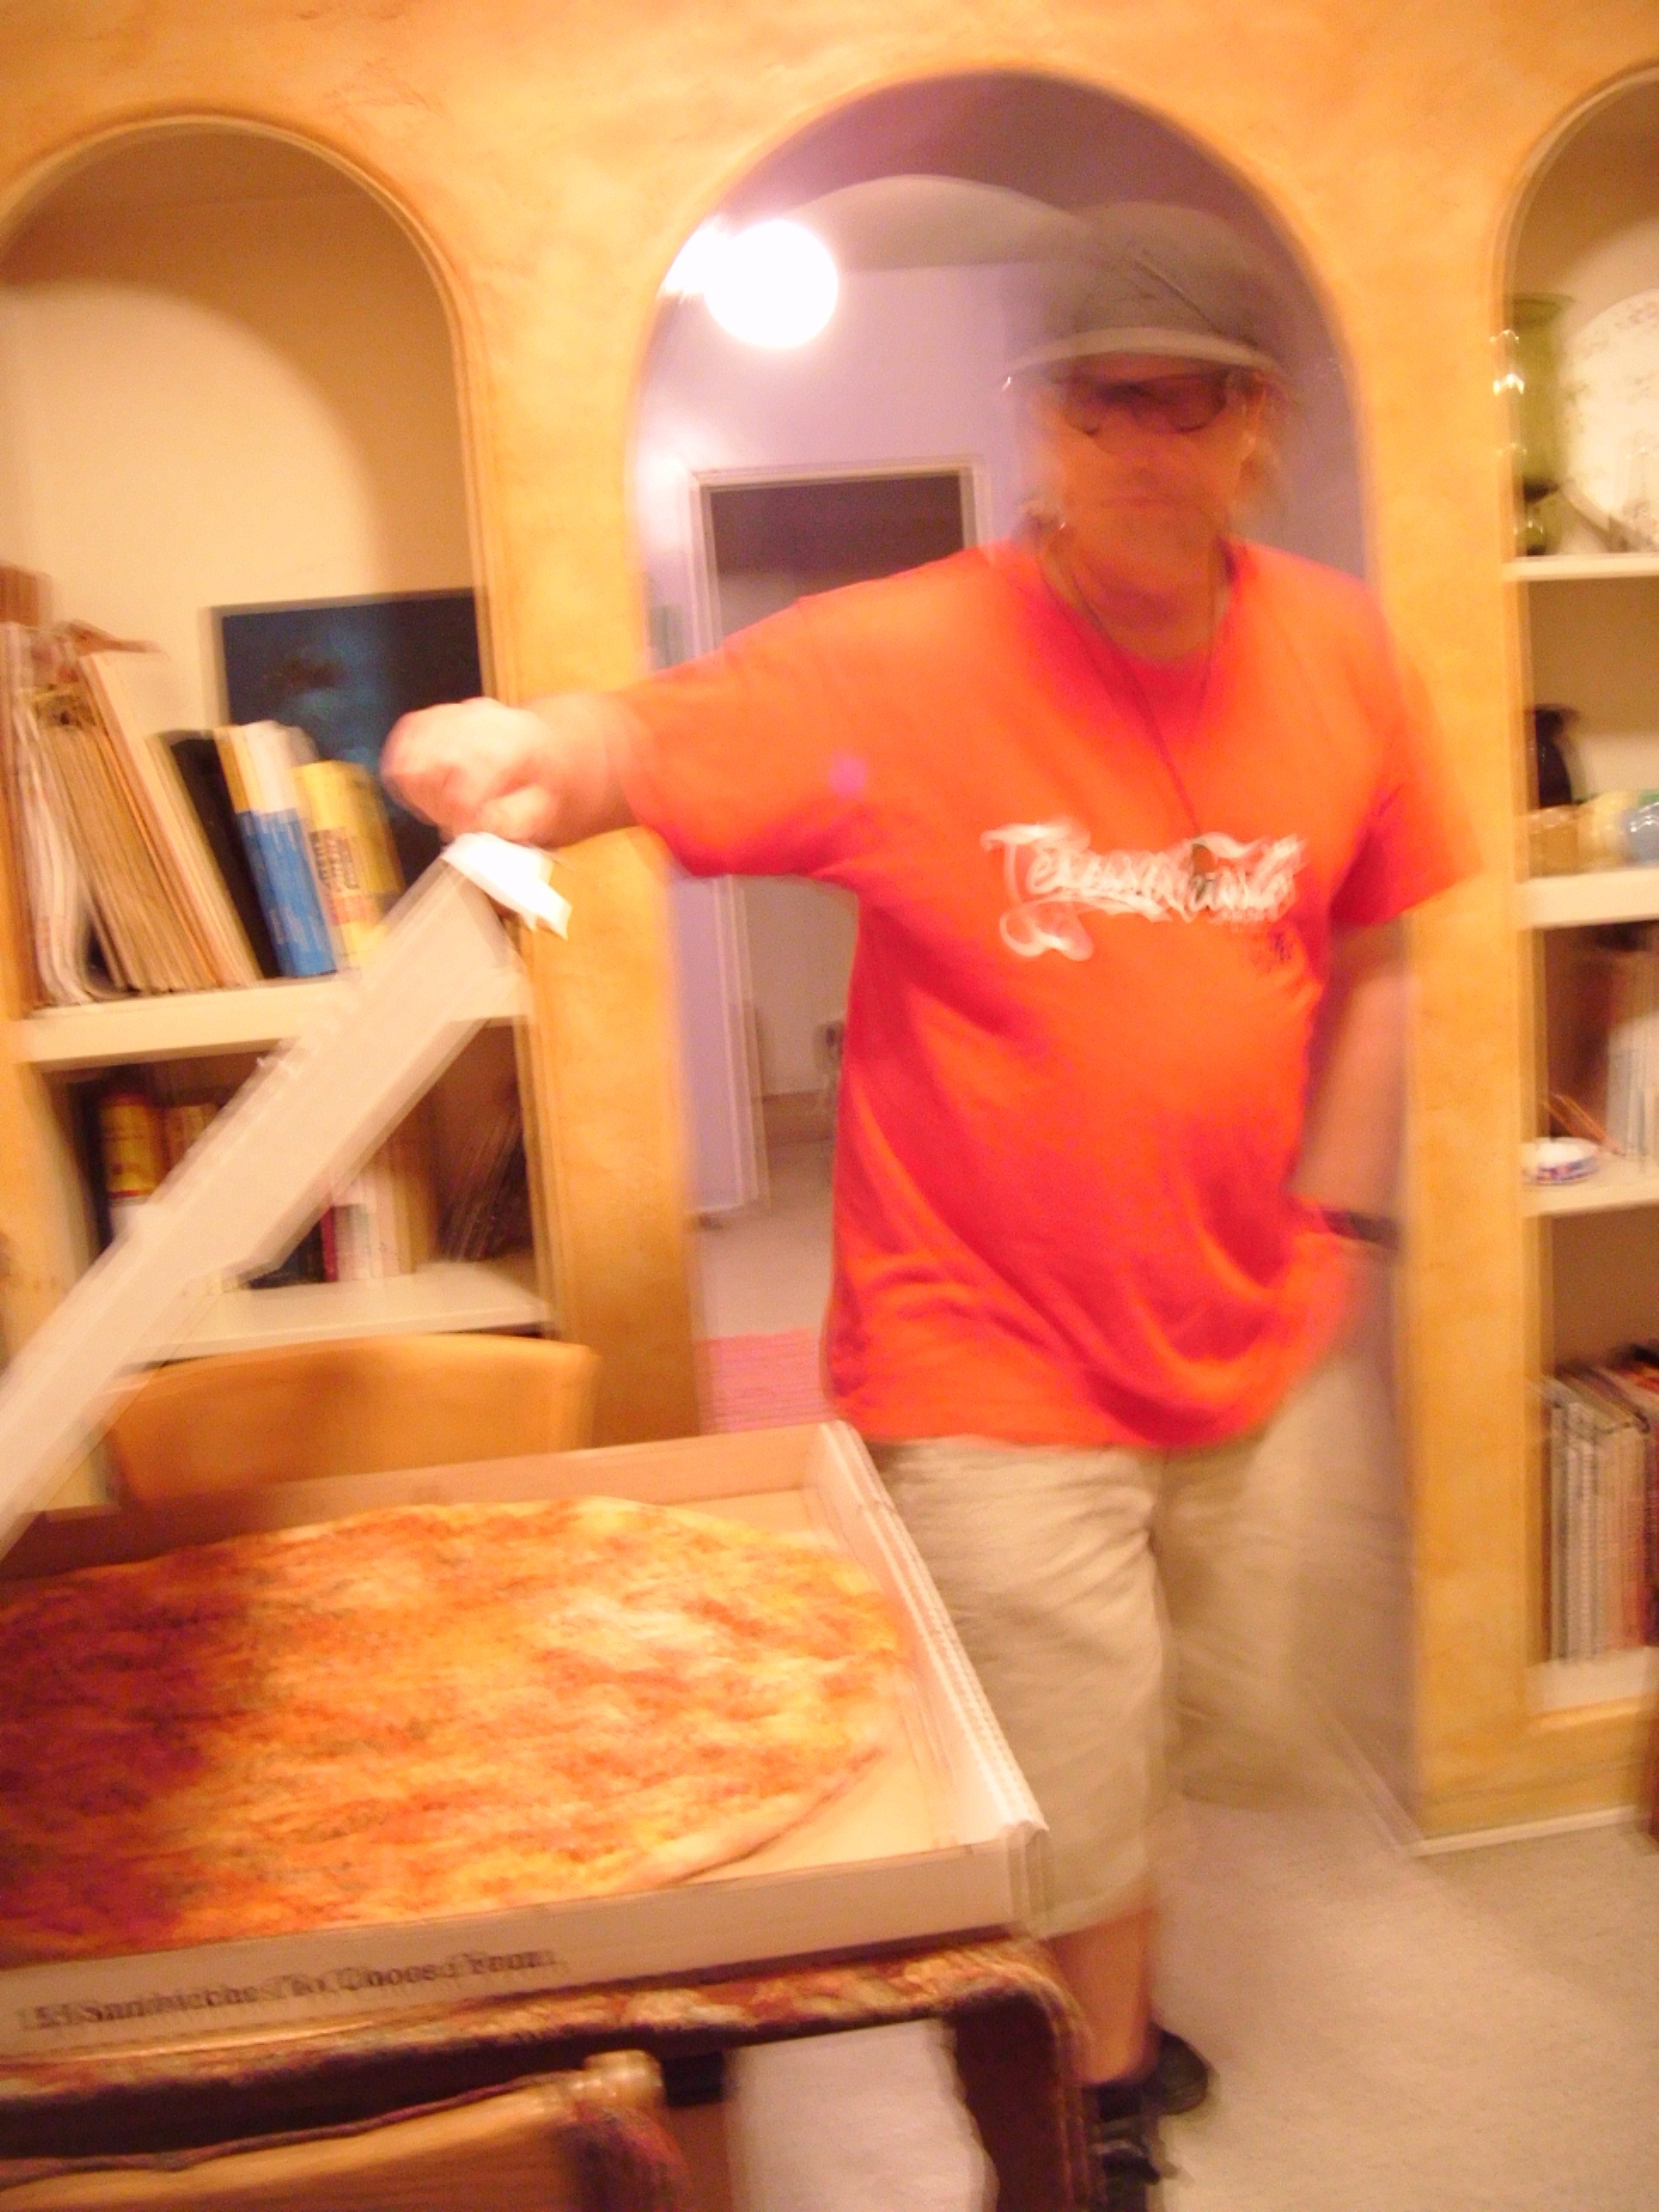 Is that a giant pizza or are you just pleased to see me?